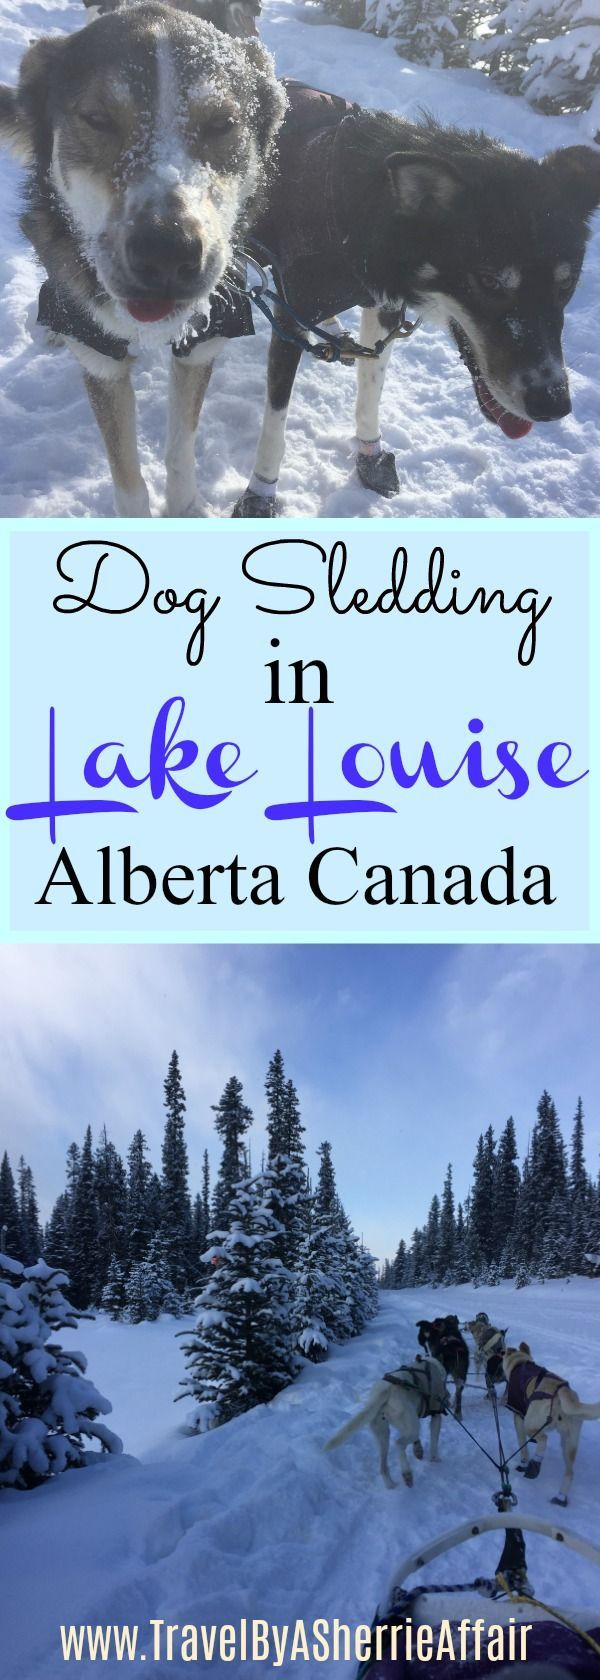 Lots of fun to be had when you go dog sledding at Lake Louise in Alberta Canada! They are amazing and fit animals, all very friendly. Your trip through the woods will have you seeing a winter like you never have before.  Breathtaking views.   #LakeLouise #Dogsledding #winterfun #wintertrip #motherdaughter #holiday #travel #wintervacation #winteractivities #snowfun #snowactivites #outside #Fairmonthotel #Fairmontchateulakelouise